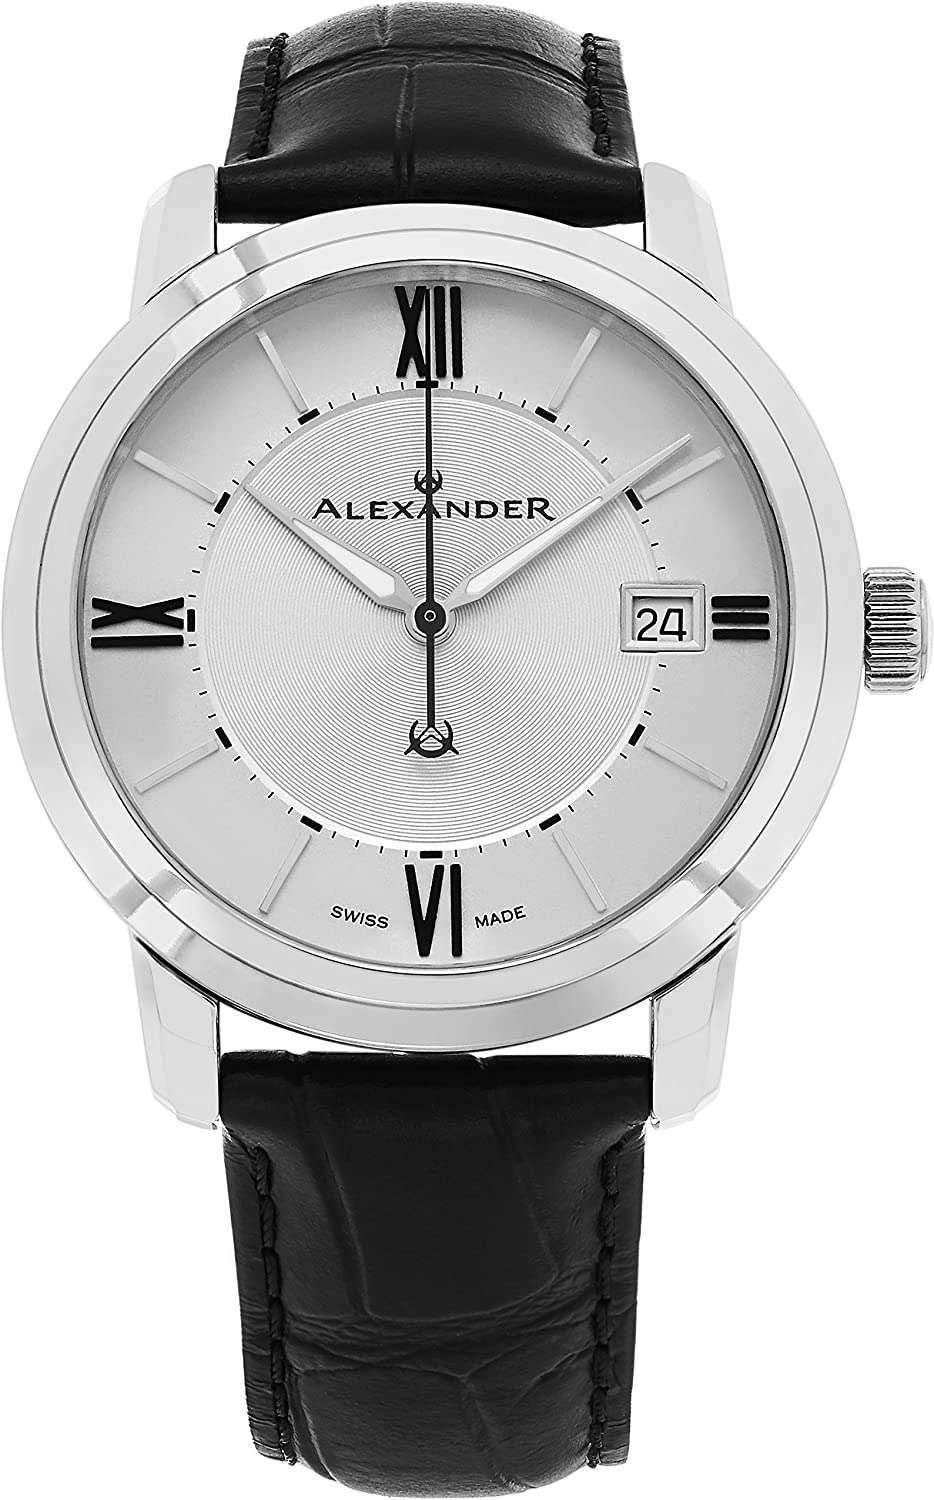 Alexander Heroic Macedon Stainless Steel Mens Dress Watch Black Leather Band – 40mm Analog Silver Face with Second Hand Date and Sapphire Crystal – Classic Swiss Made Quartz Watches for Men A111-02